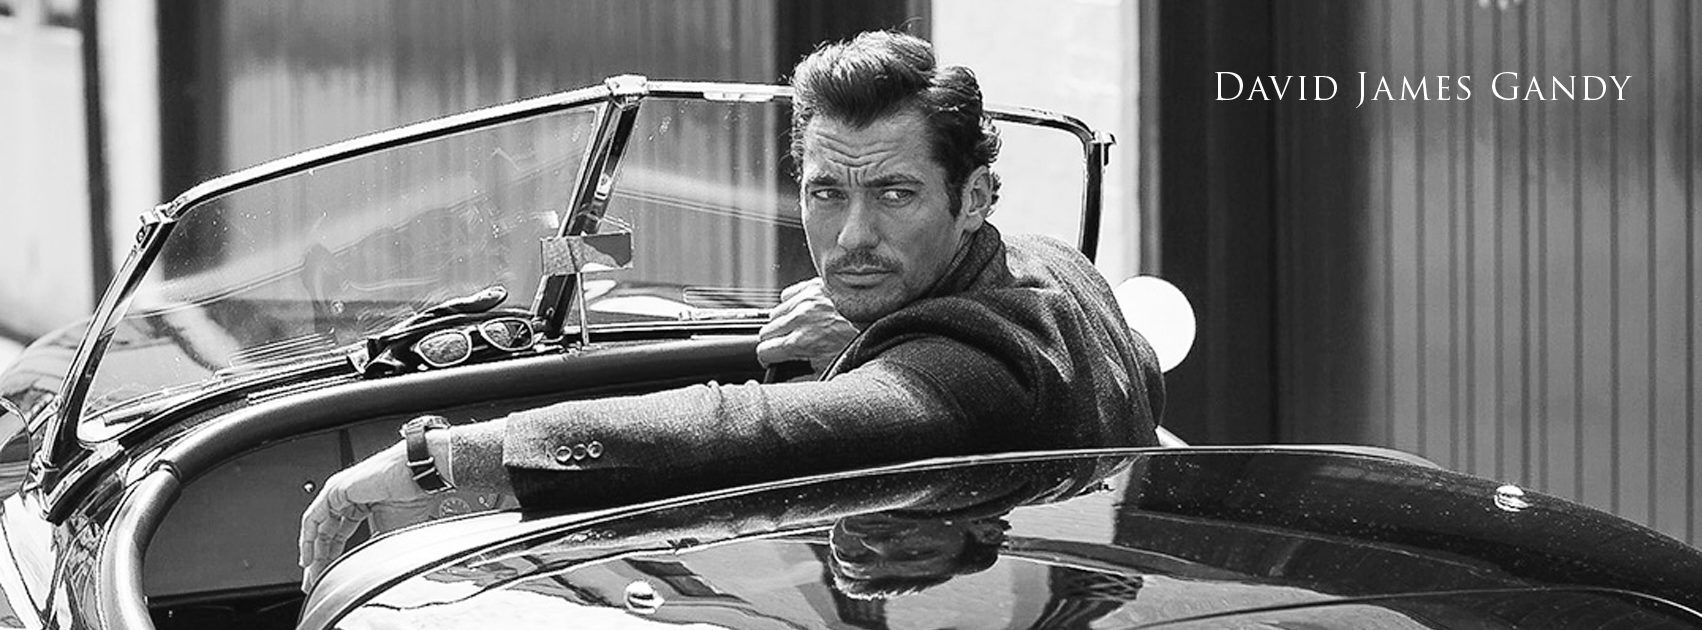 https://www.facebook.com/OfficialDavidGandy/